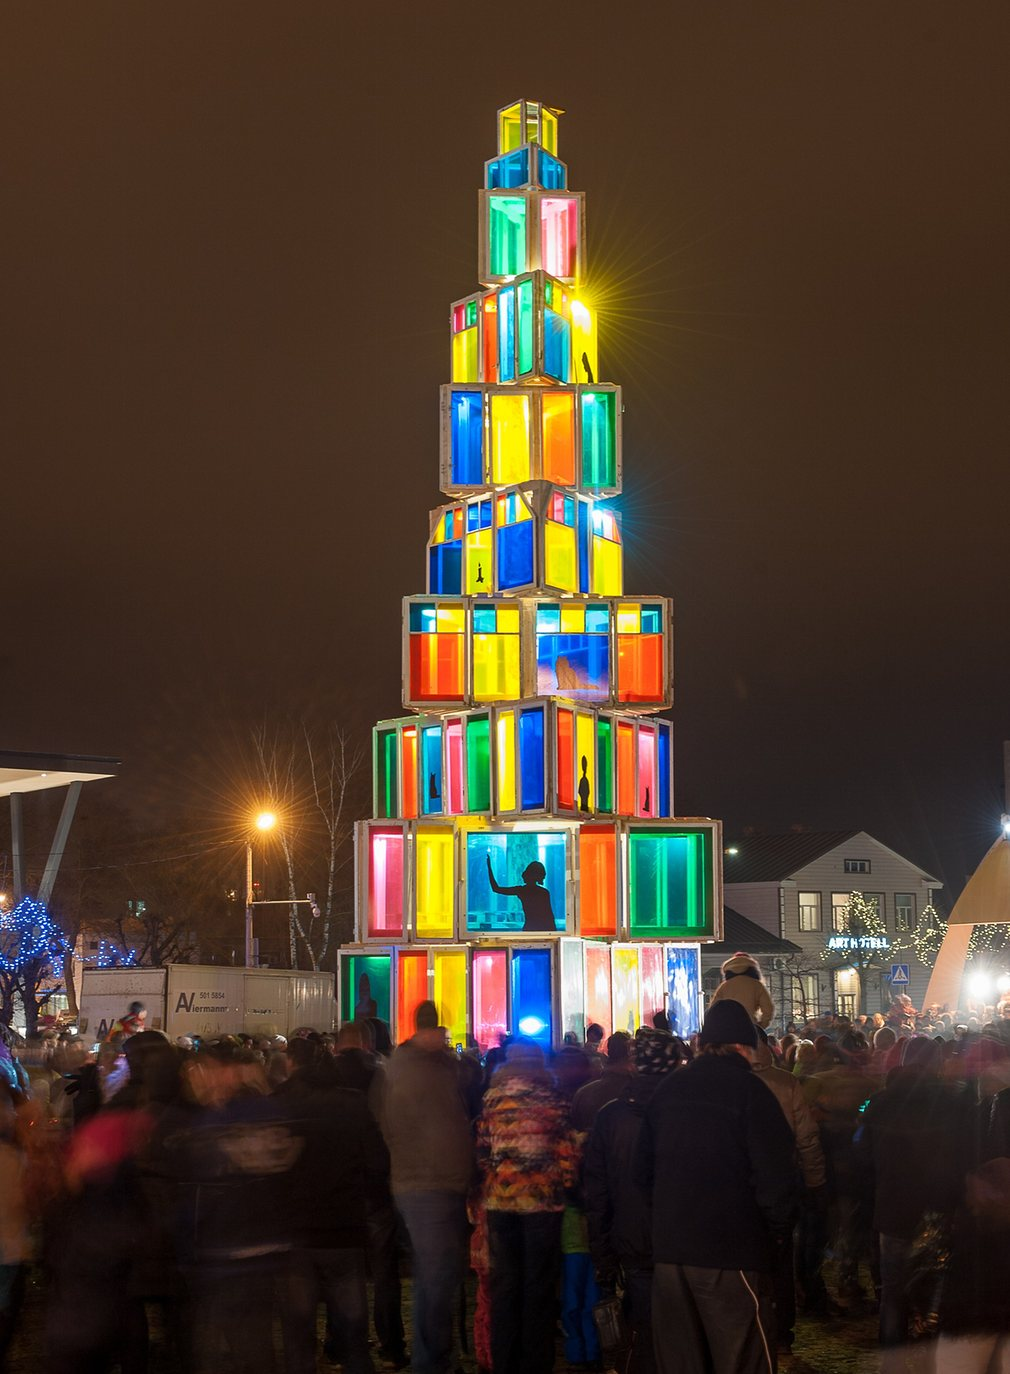 christmas tree made of recycled windows in estonia - Giant Christmas Tree